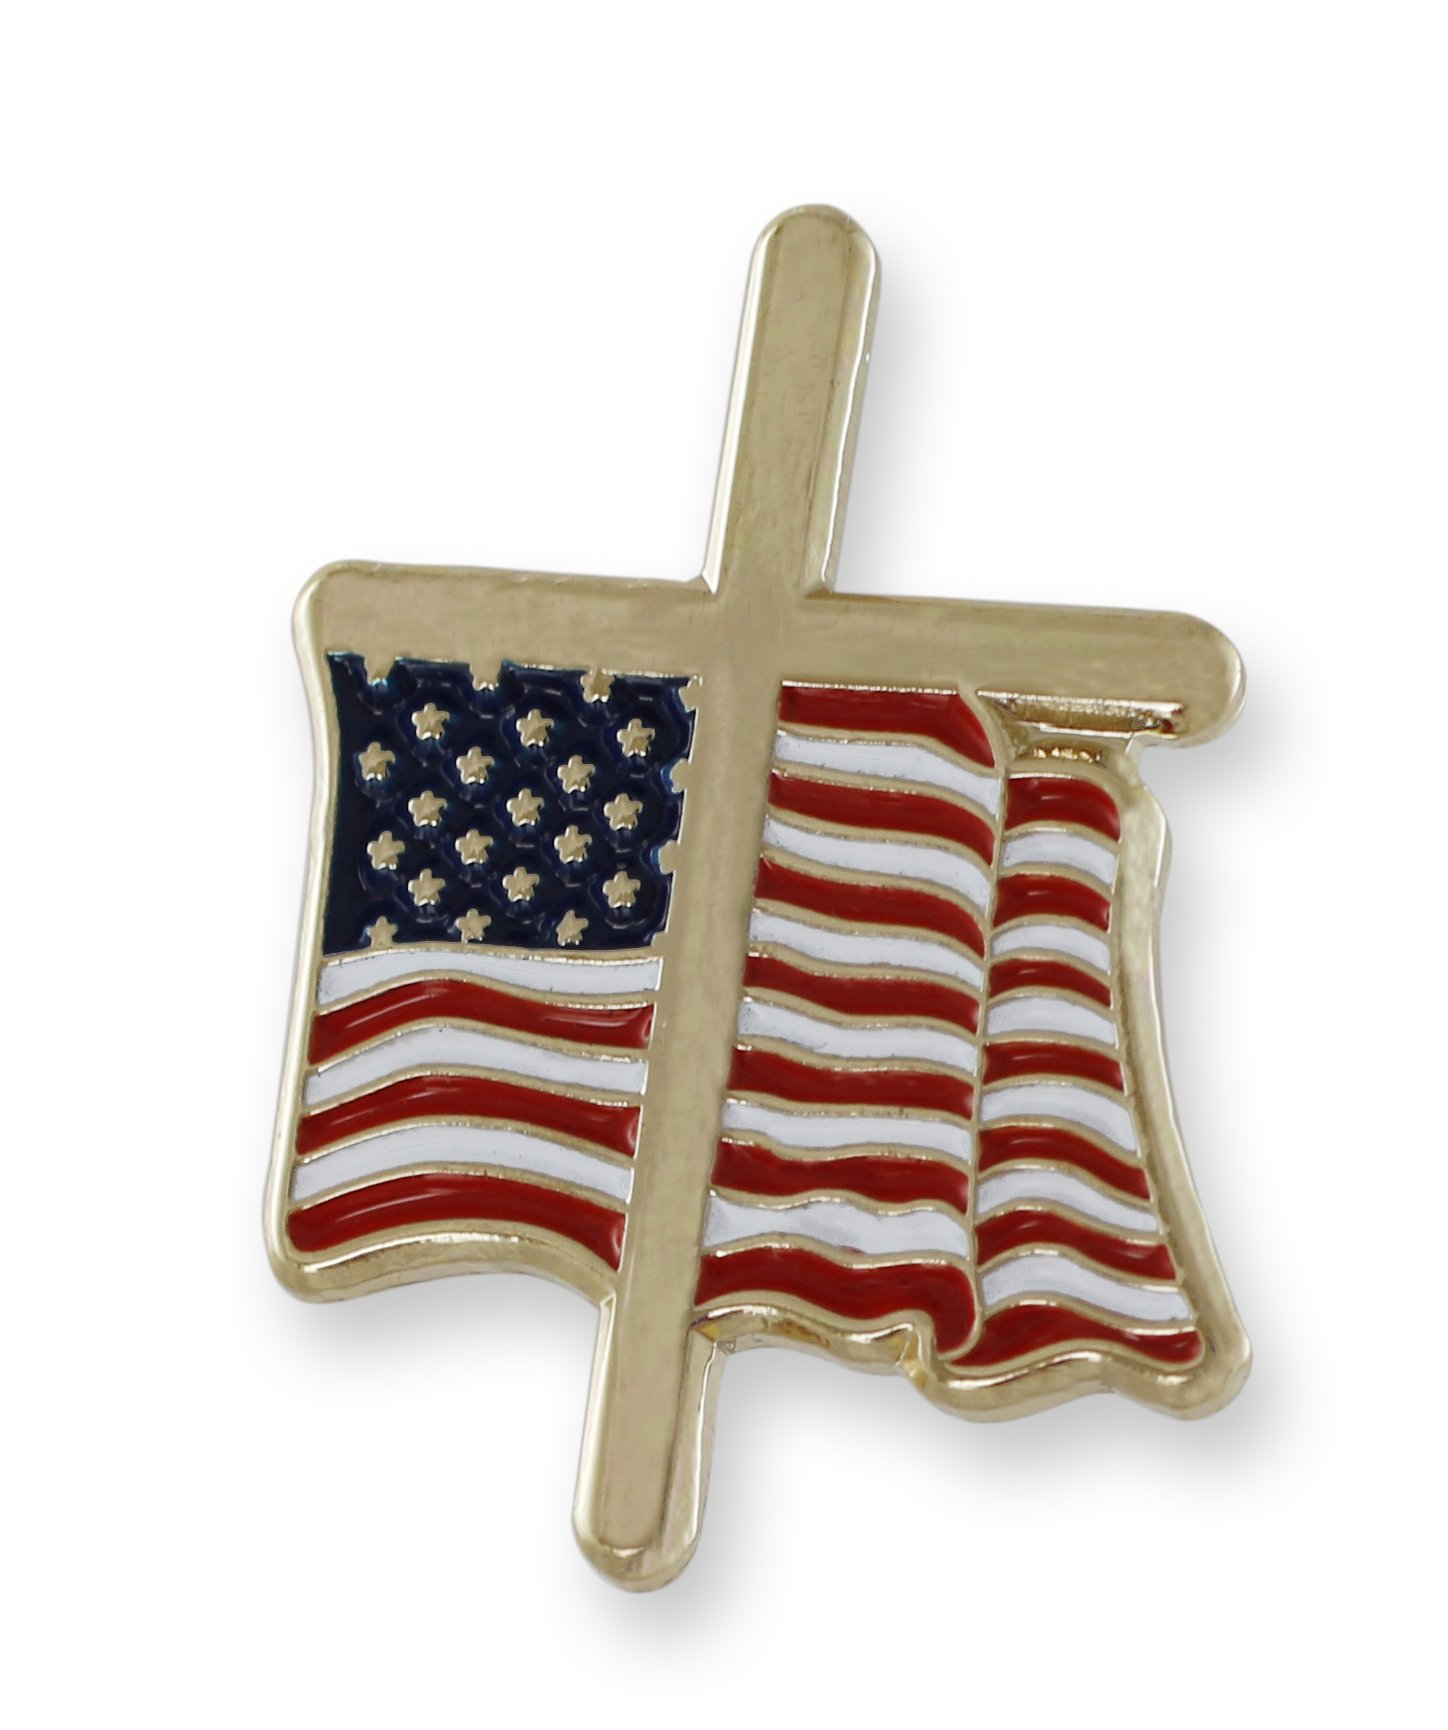 American Flag with Religious Cross Lapel Pin (50 Pins) by Forge (Image #1)